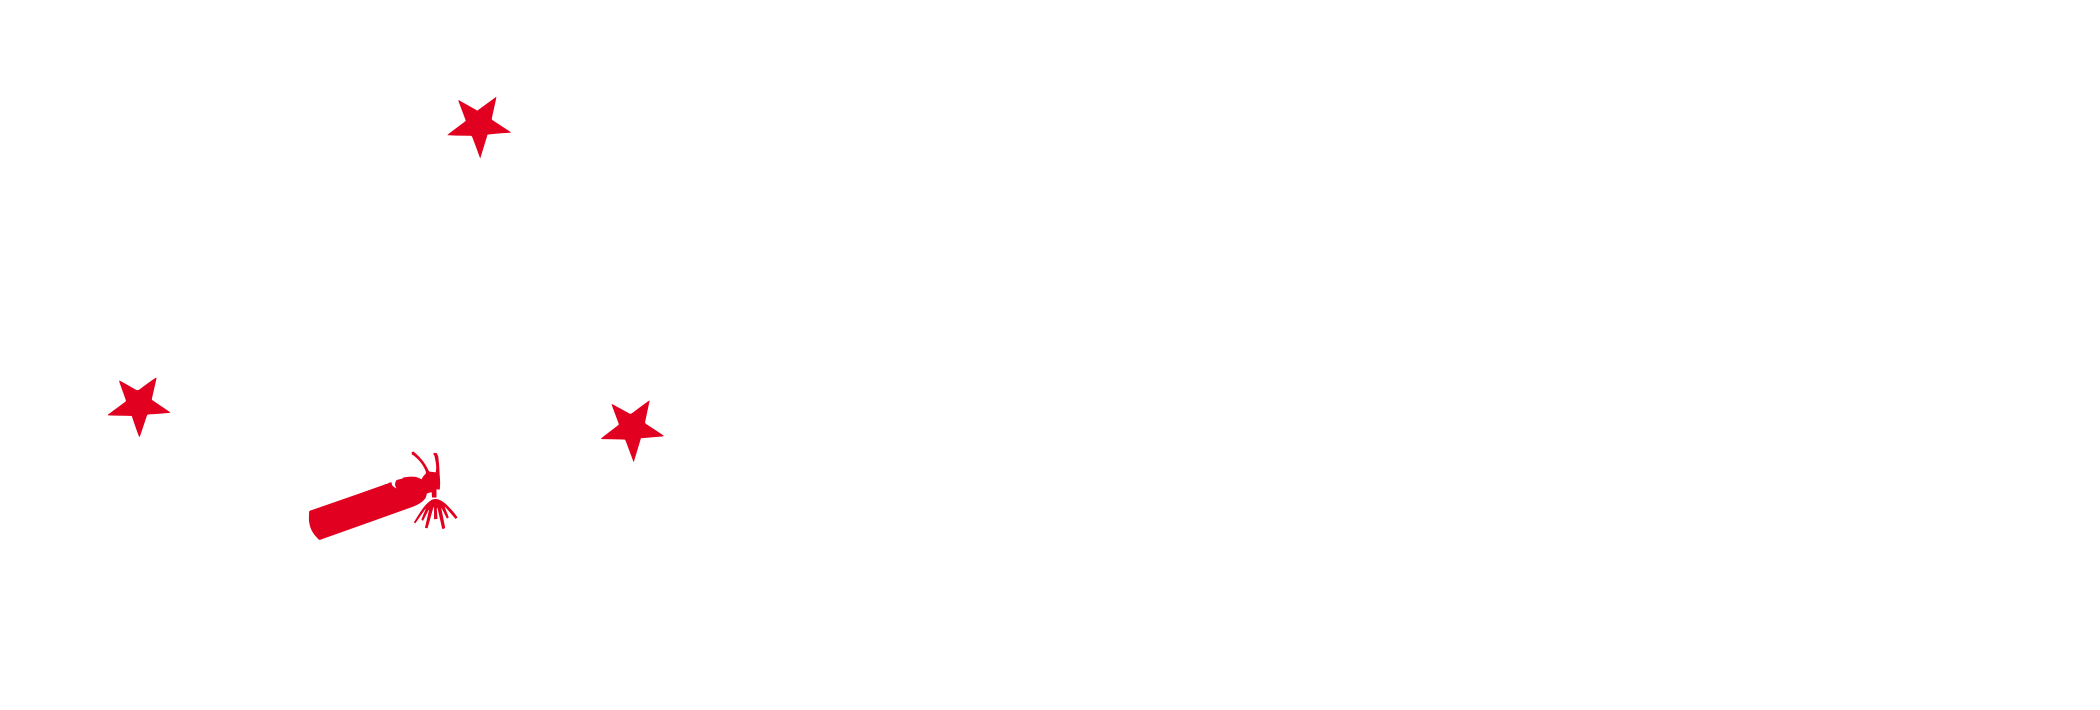 PFP Fire Extinguishers.png